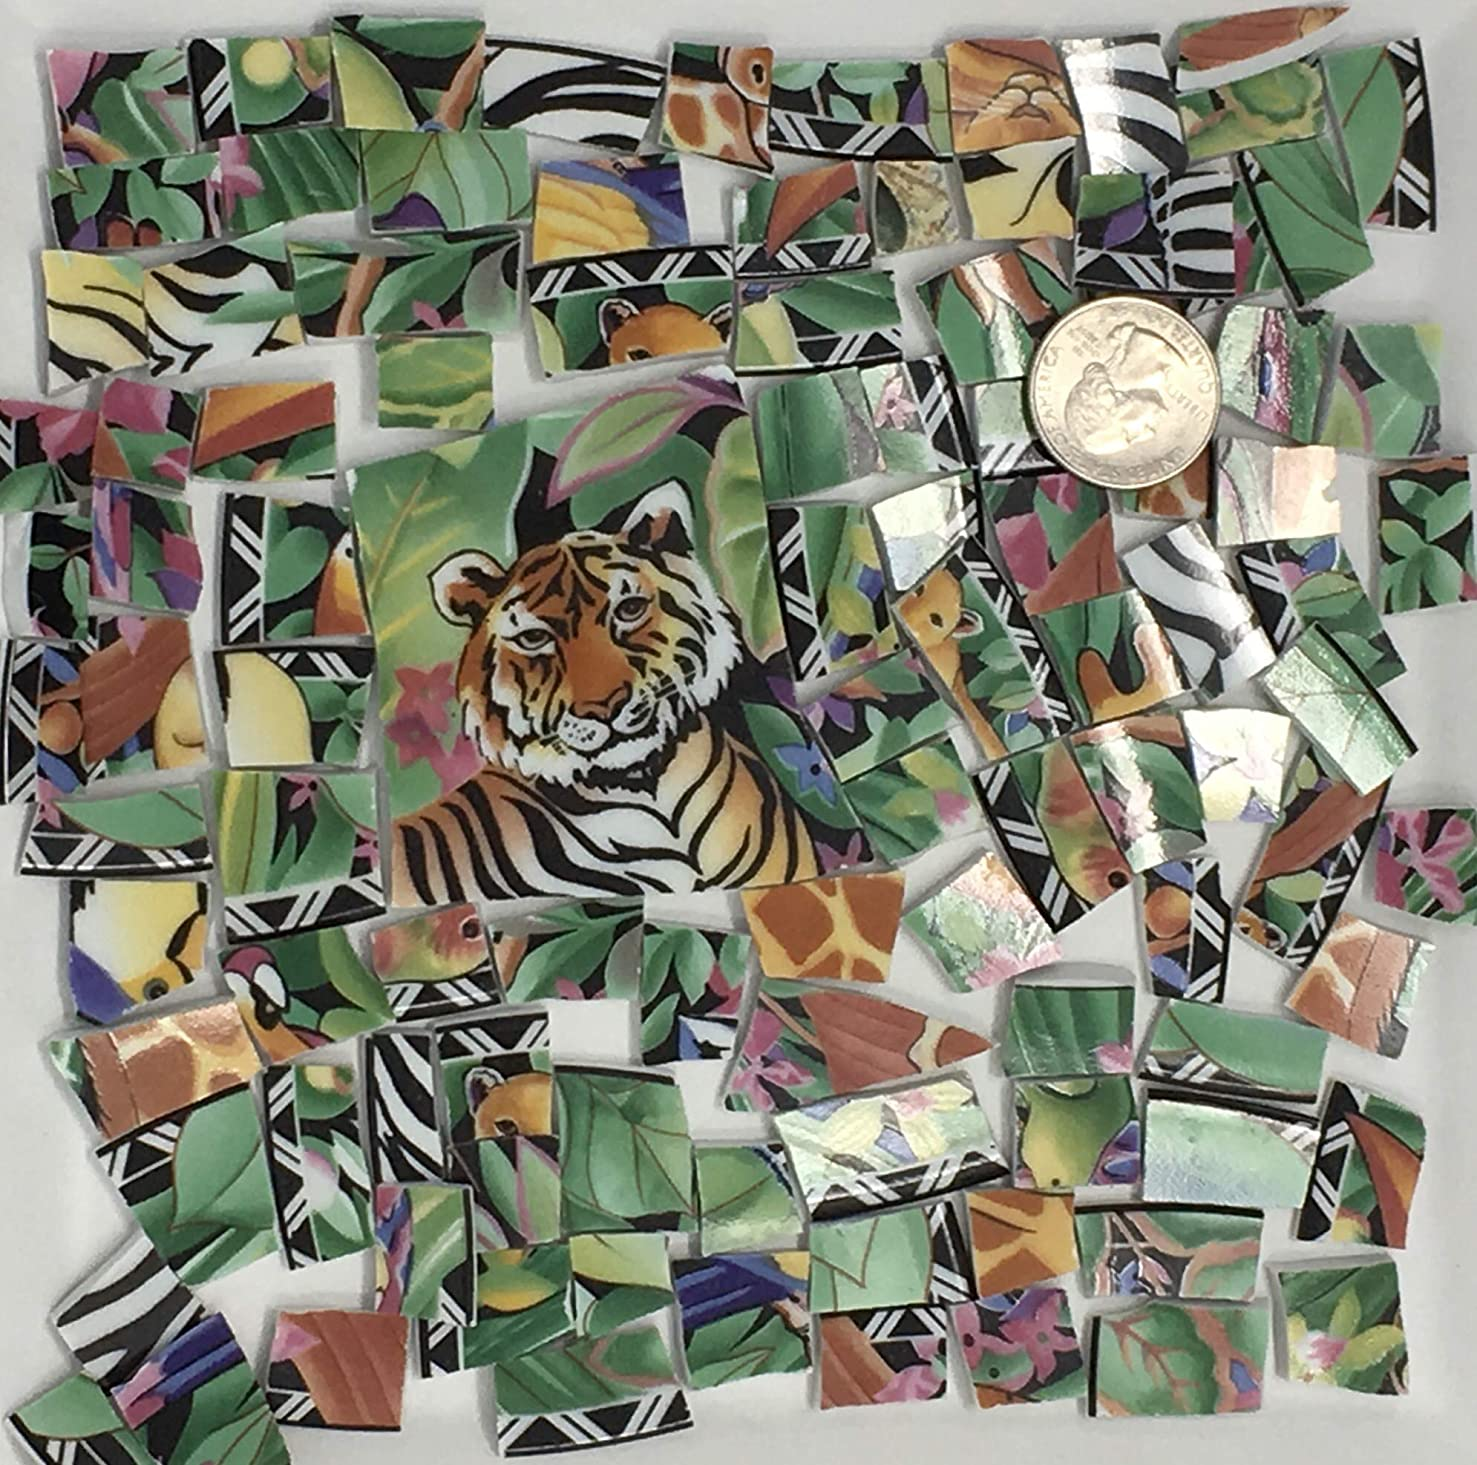 Mosaic Art & Craft Supply ~ Jungle Tiles with Large Tiger Feature Tile (A531)